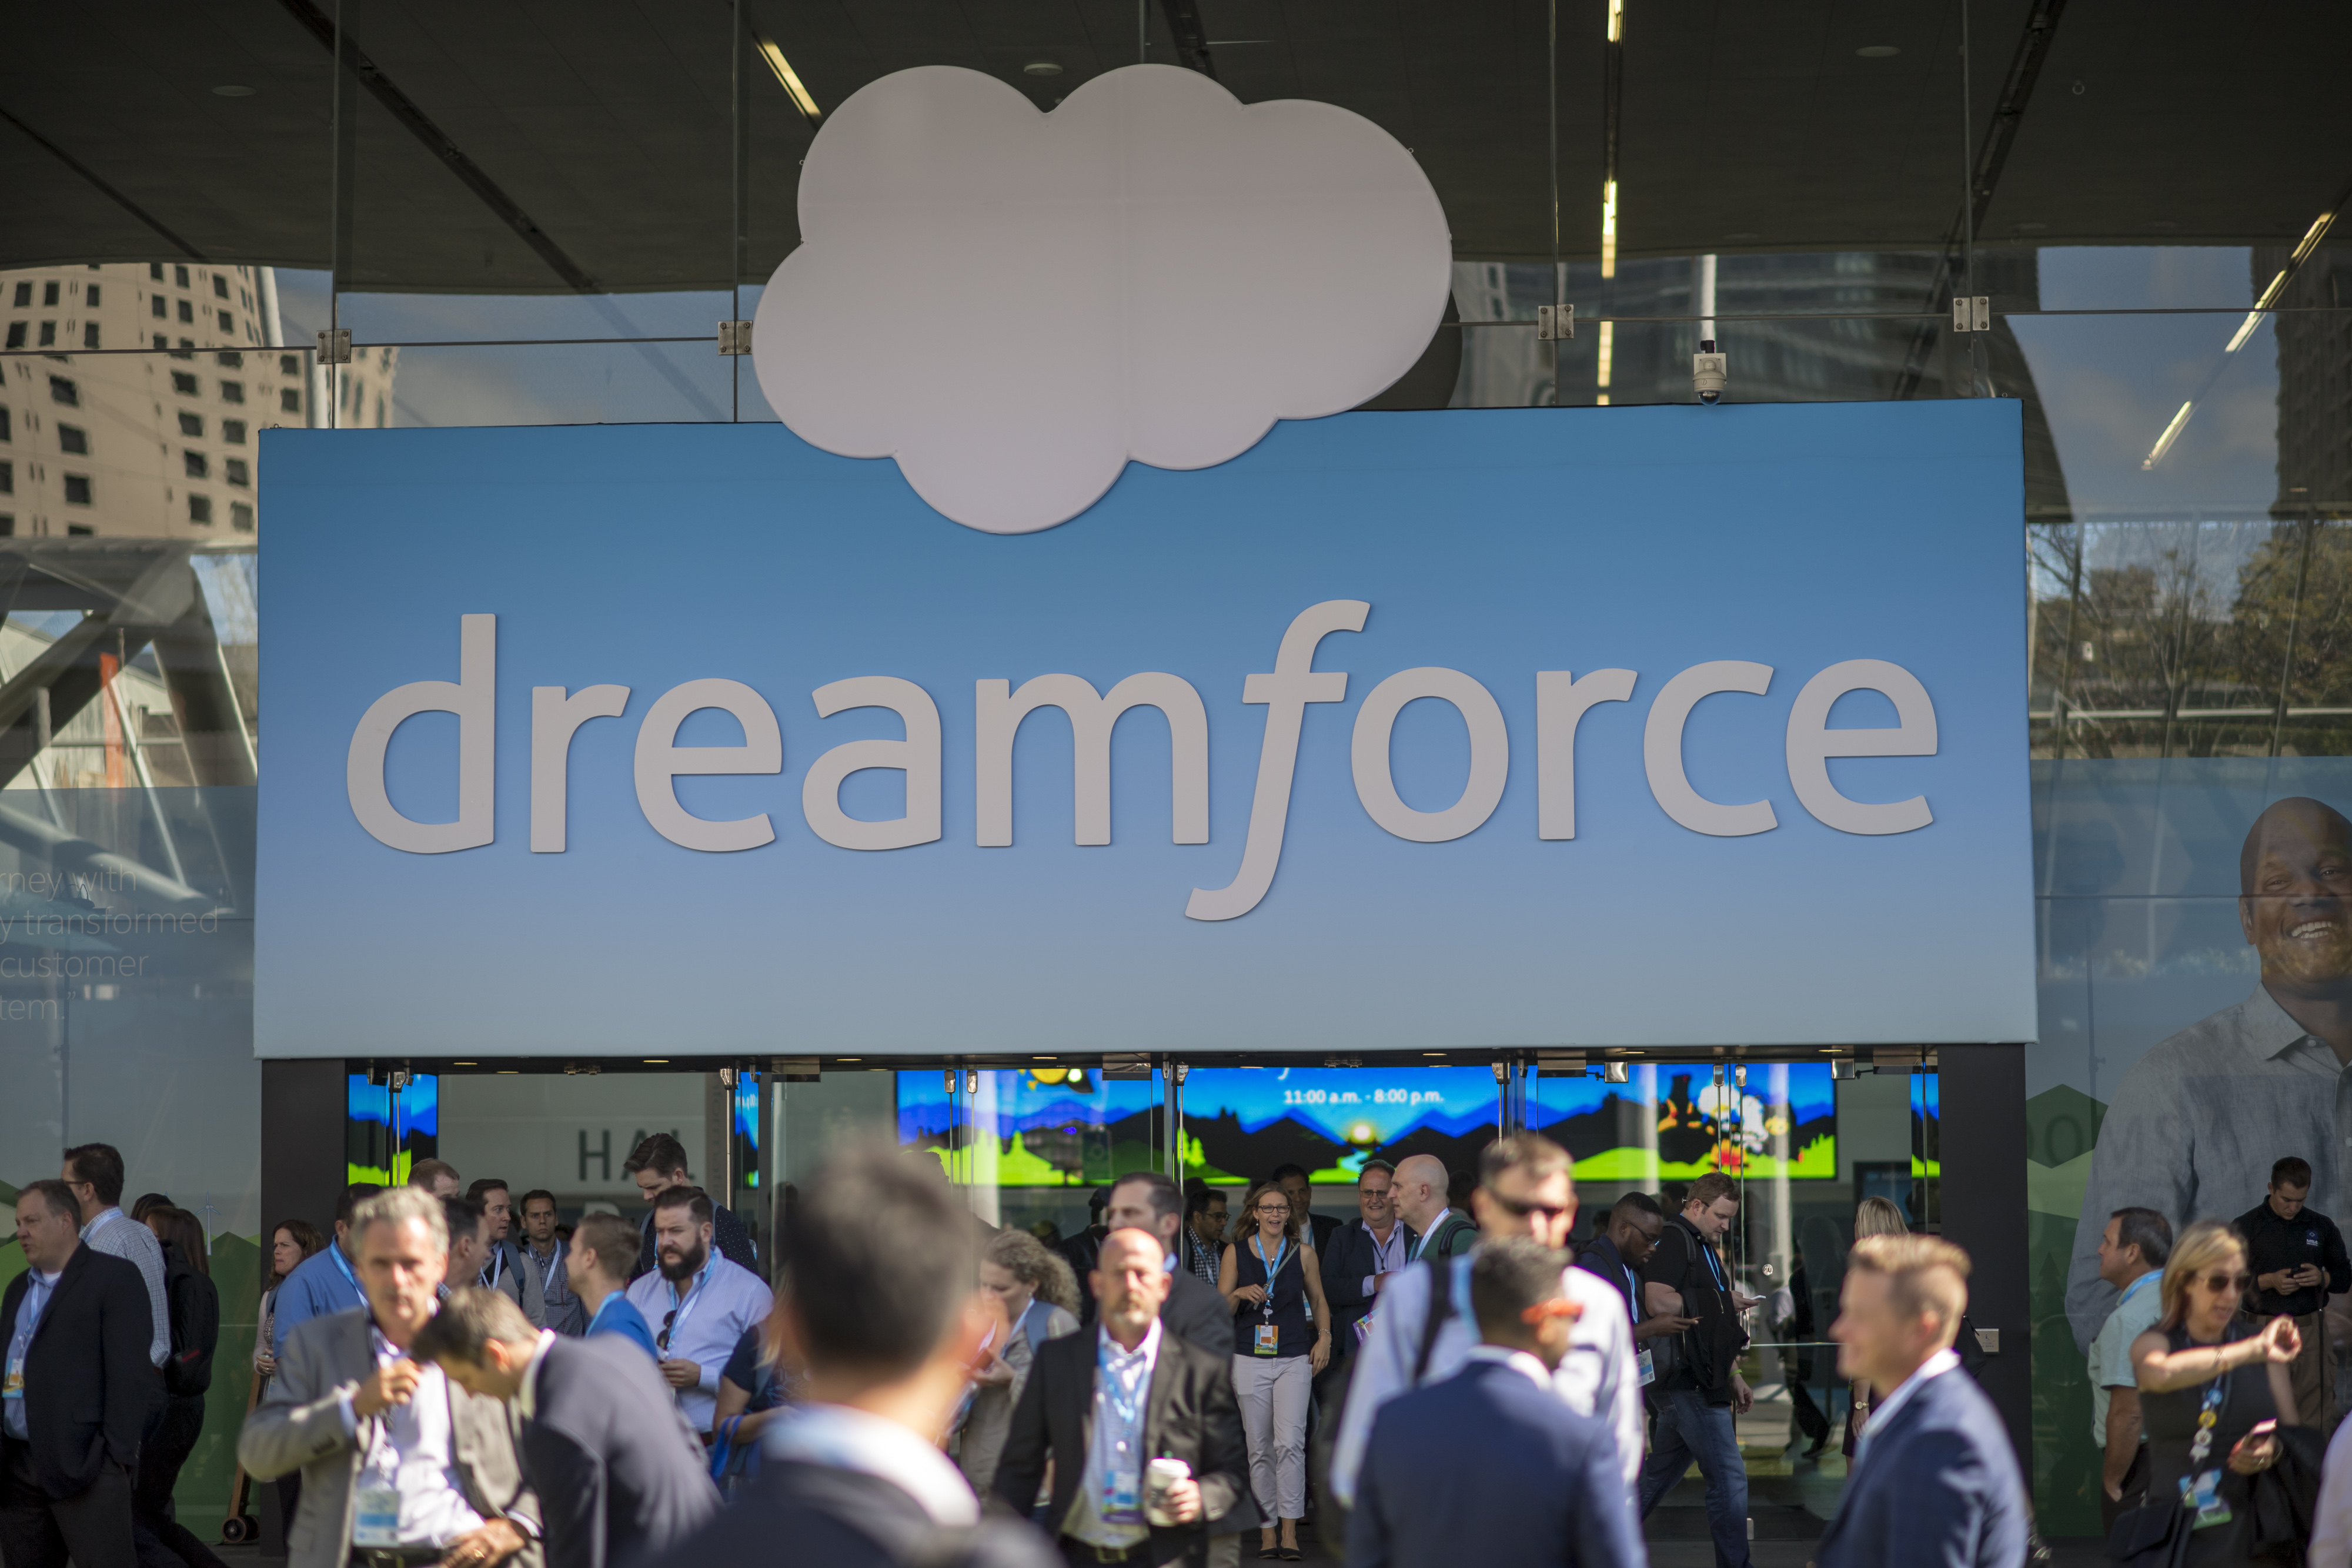 Key Speakers At 2016 The Dreamforce Conference